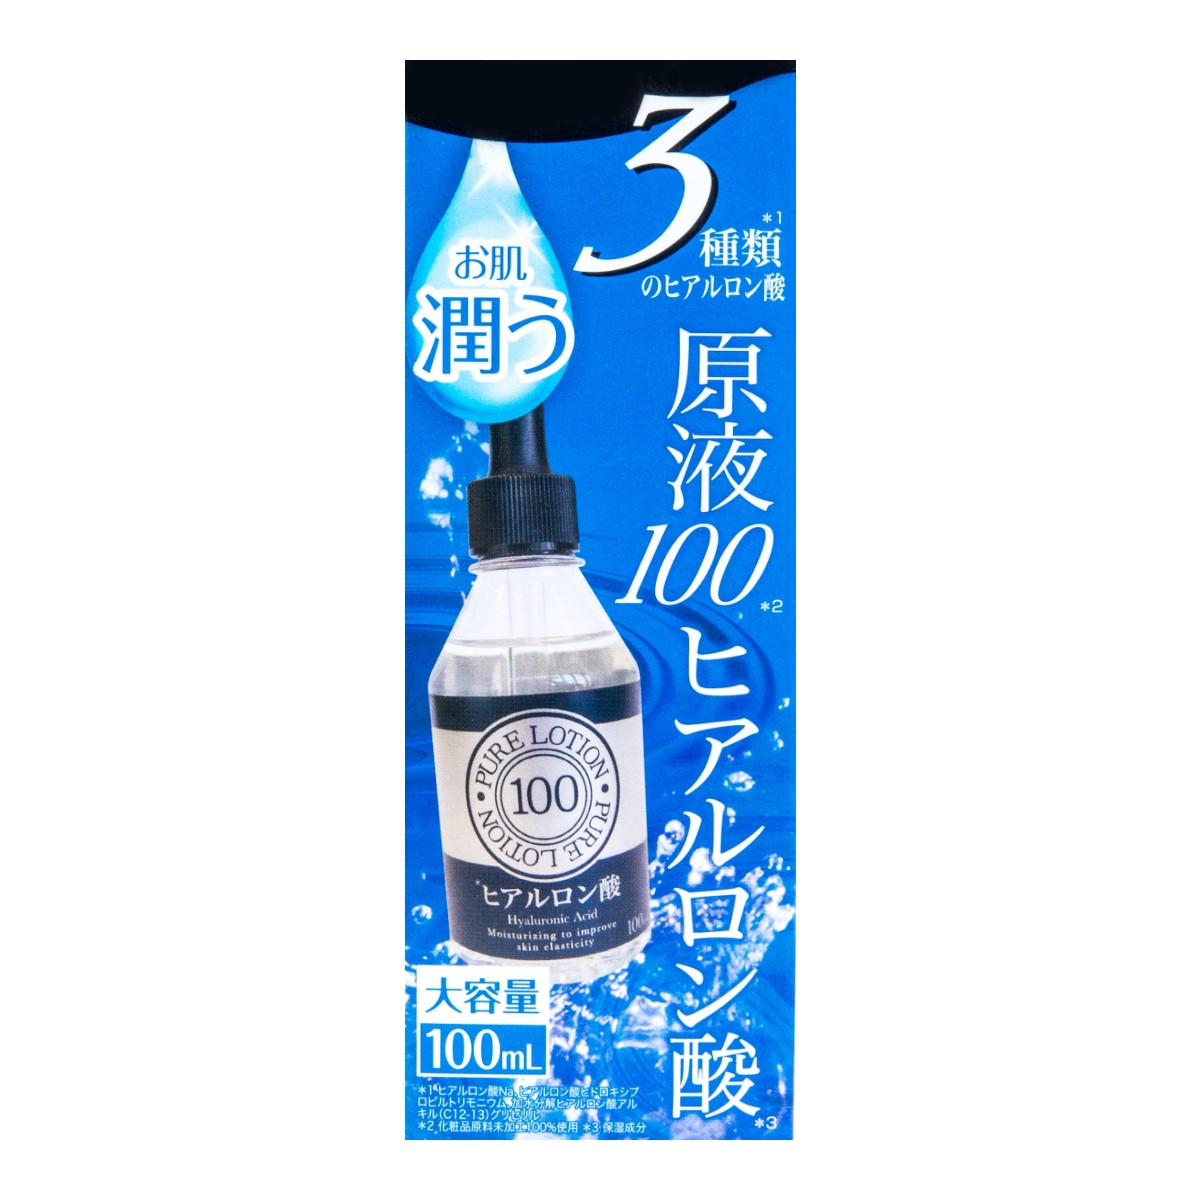 JAPAN GALS Hyaluronic Acid Pure Lotion 100ml